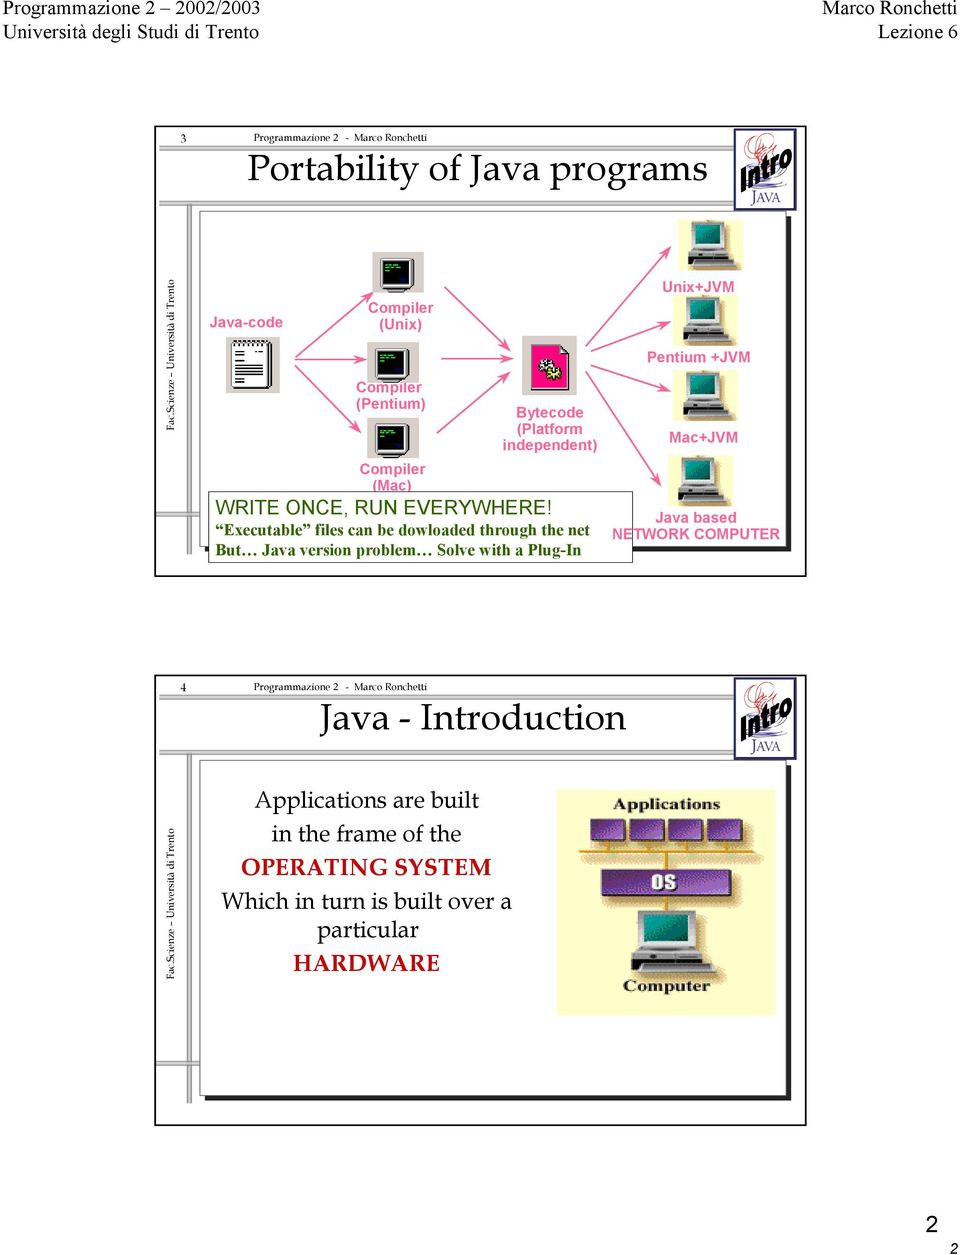 Executable files can be dowloaded through the net But Java version problem Solve with a Plug-In